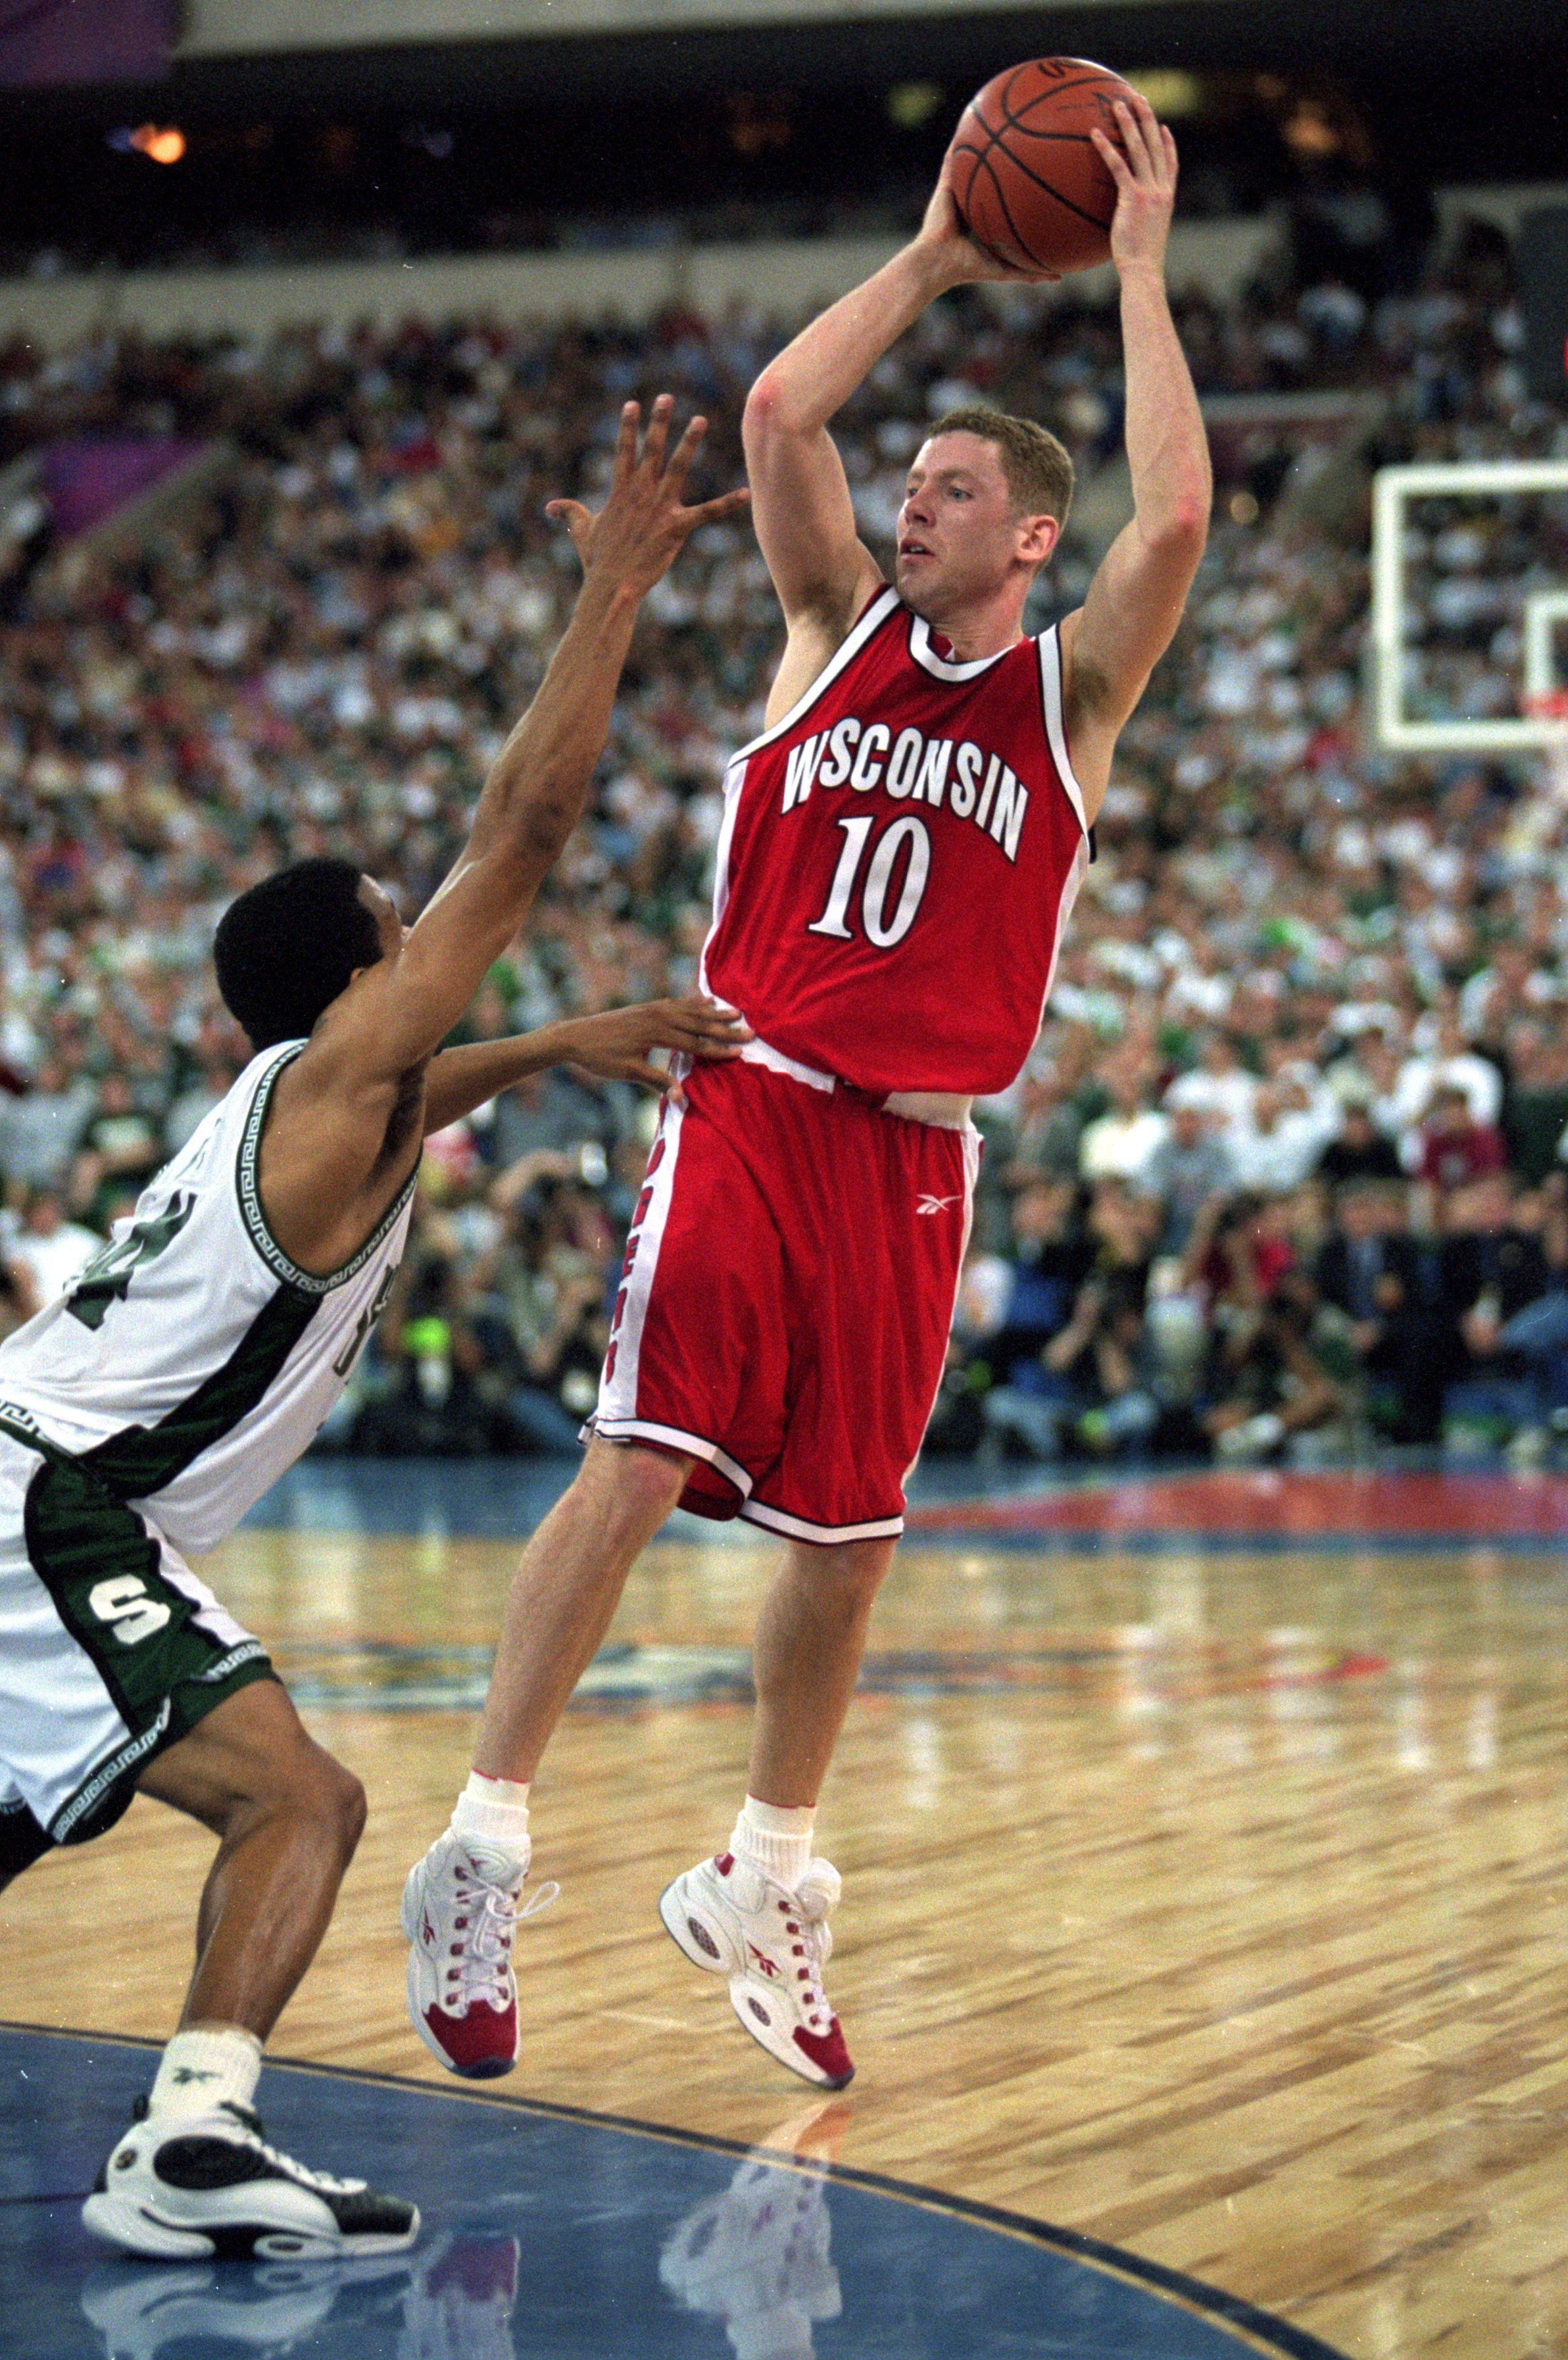 Jon Bryant #10 of the Wisconsin Badgers leaps to catch the ball during the NCAA Men''s Finals Four Game against the Michigan State Spartans at the RCA Dome in Indianapolis, Indiana. The Spartans defeated the Badgers 53-41.